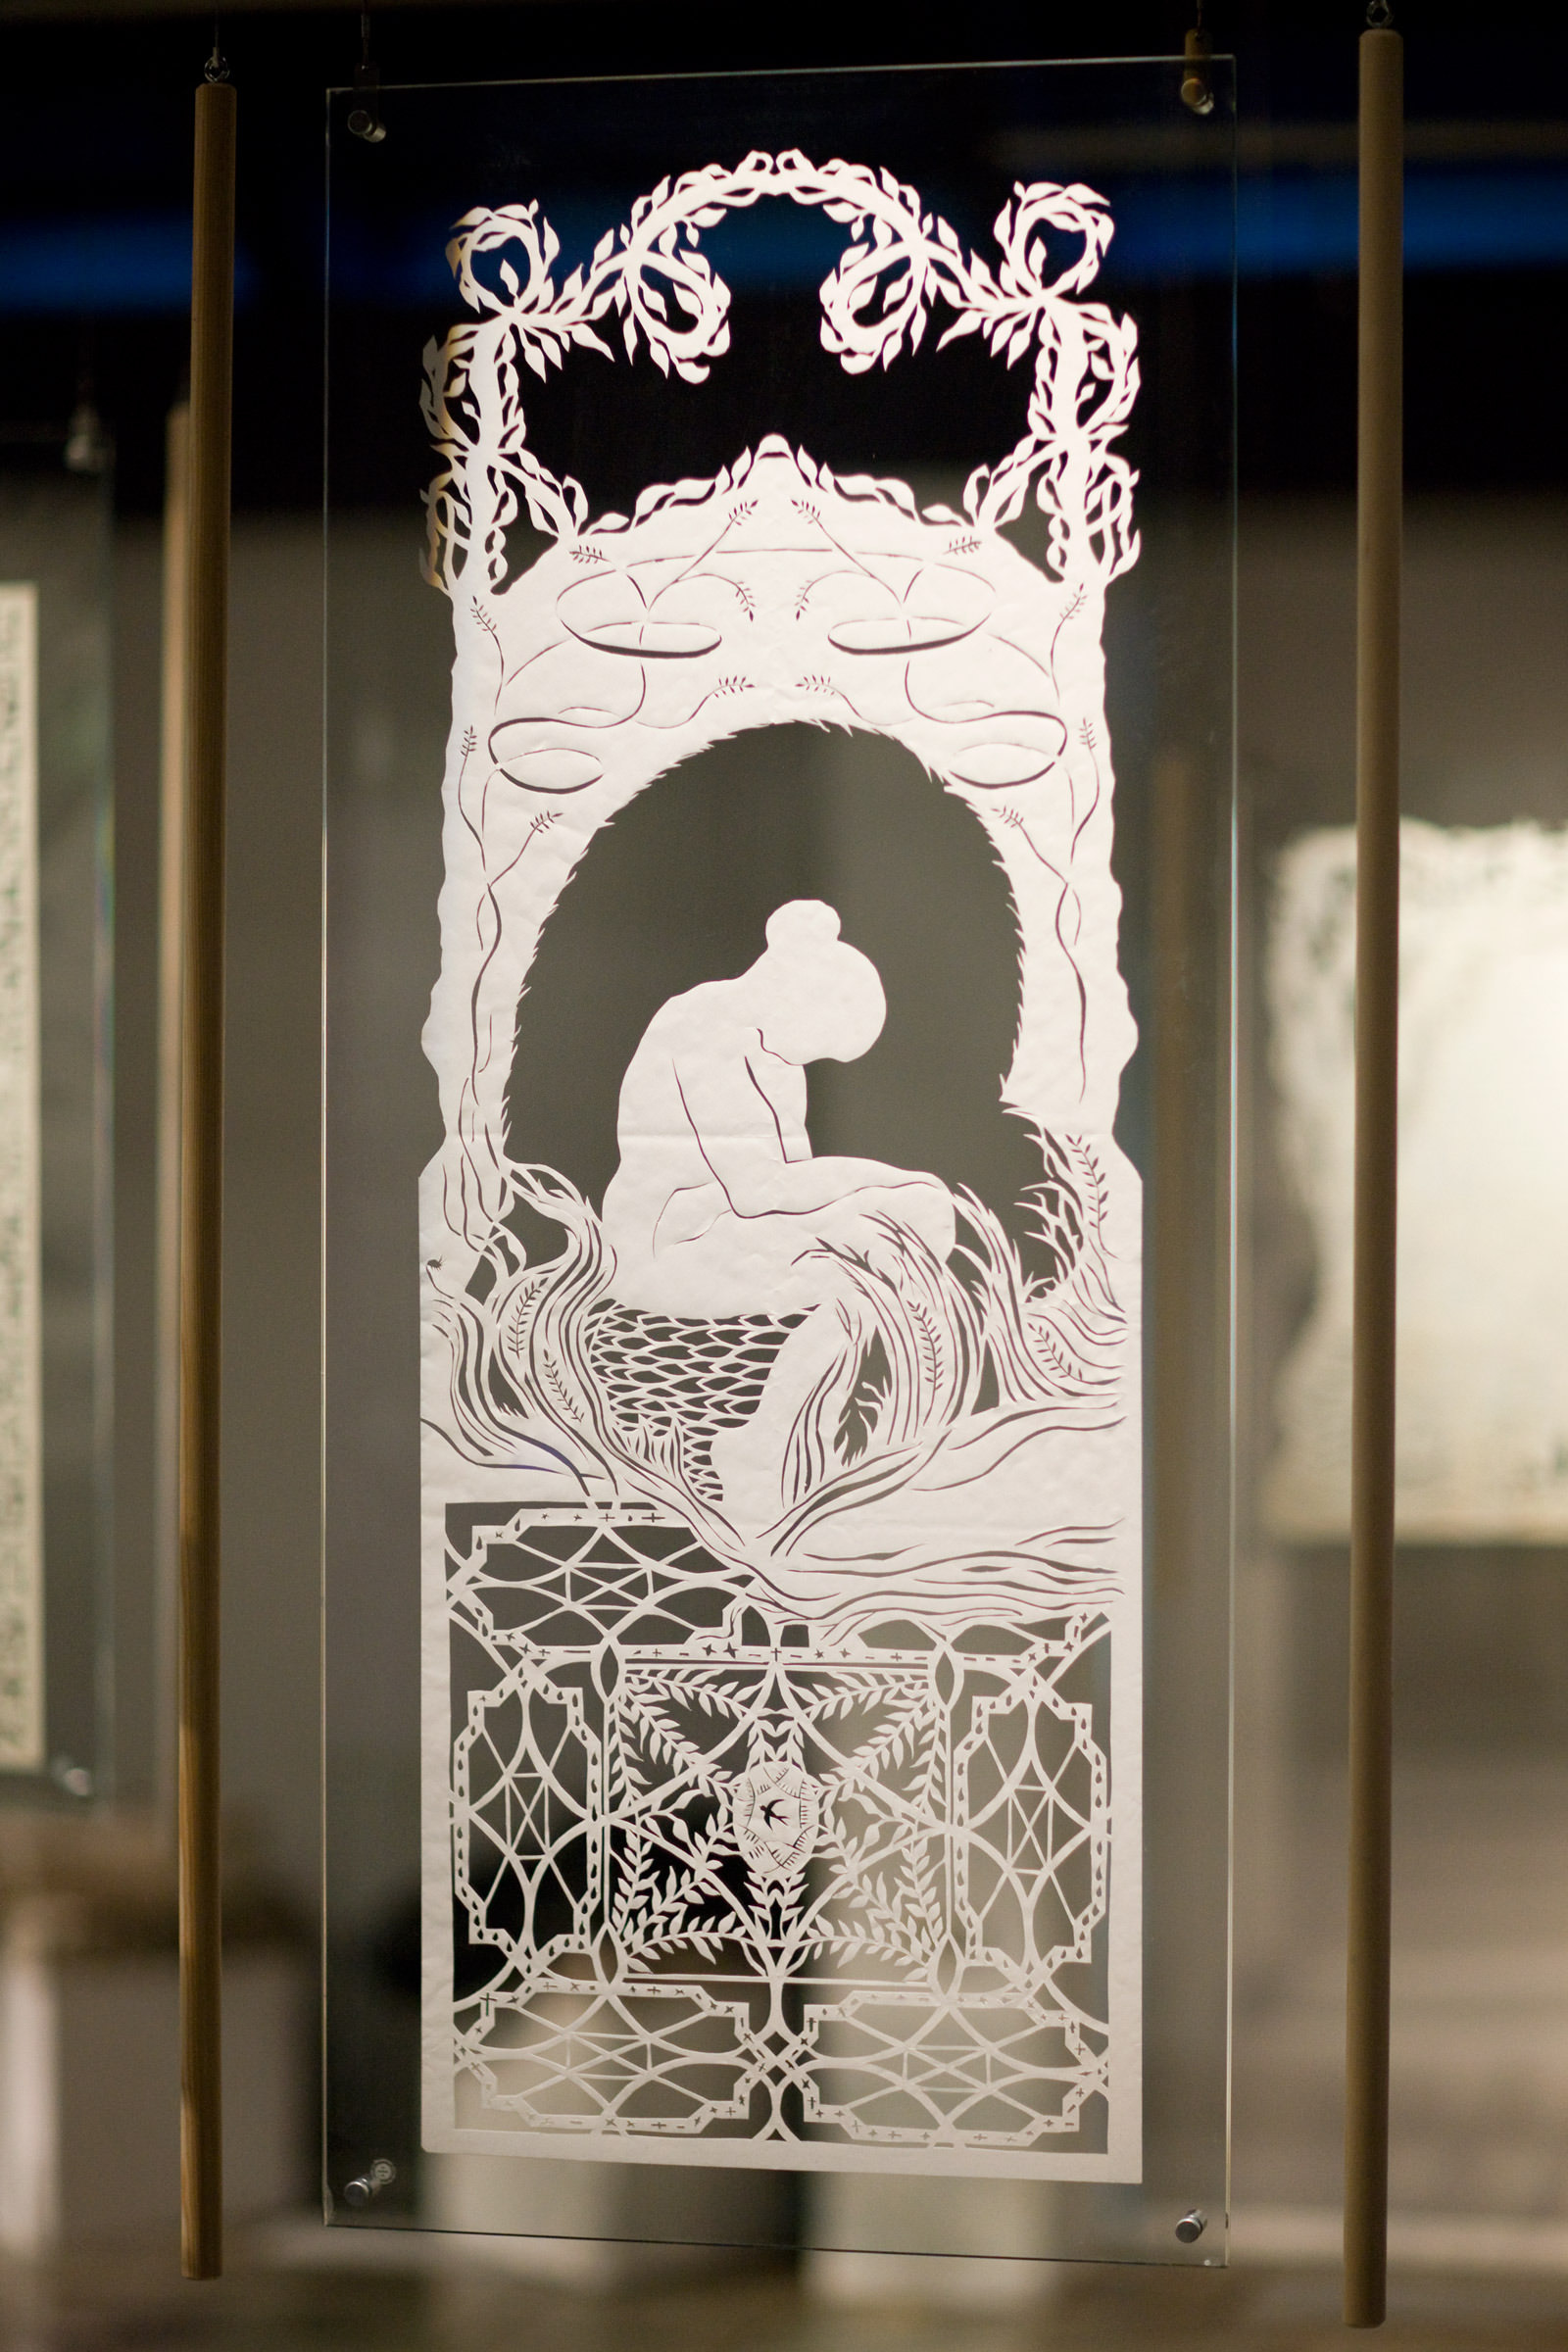 Gallery: Papercut Poetry | Geek Universe